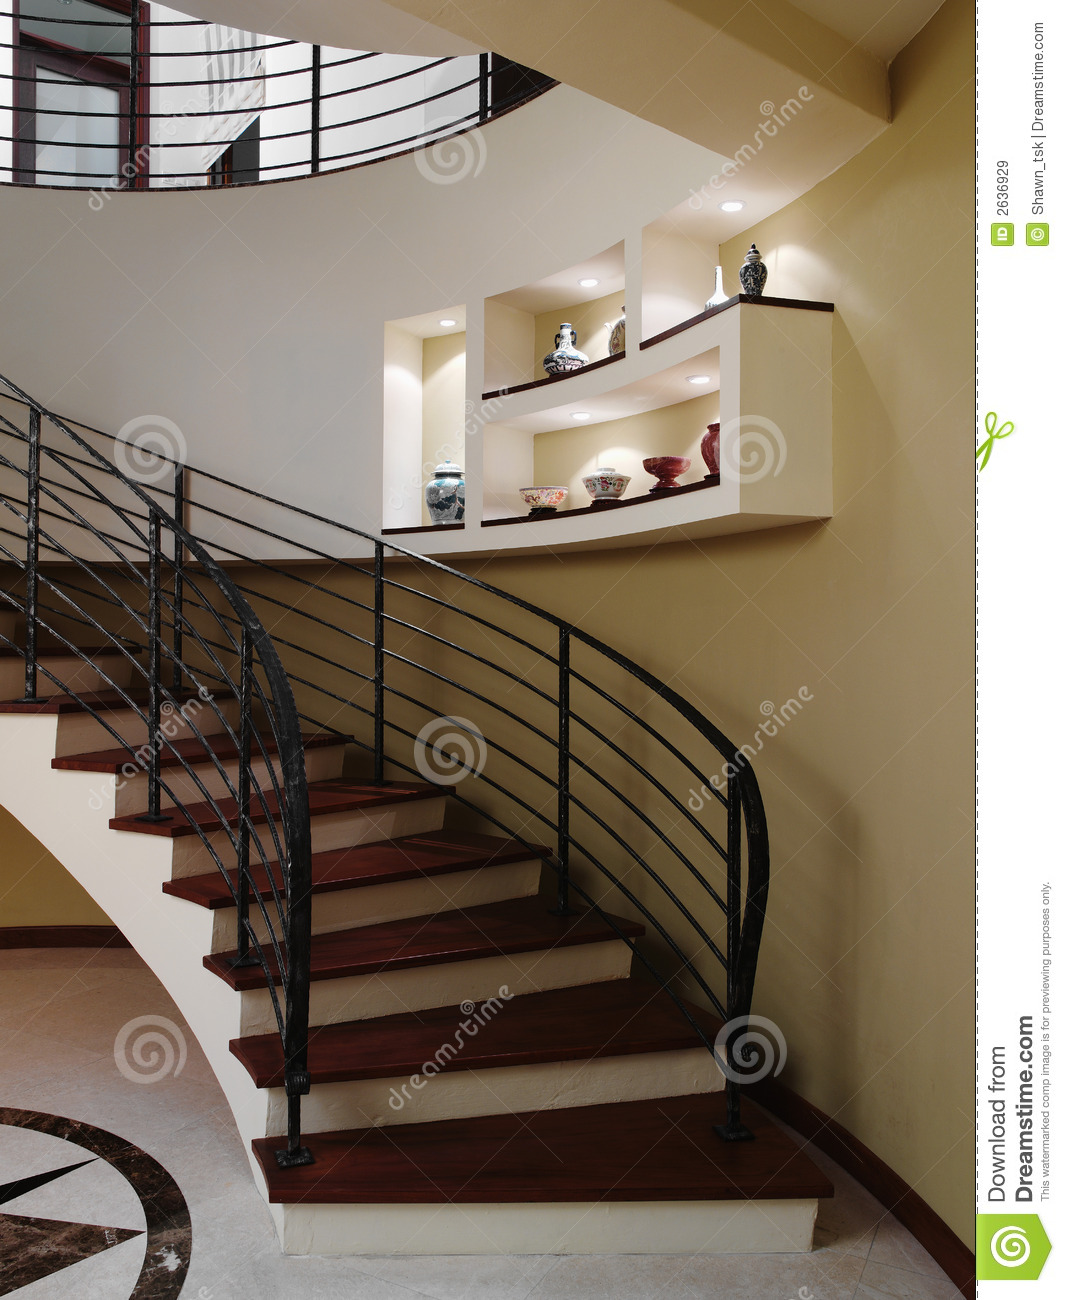 Interior design stairs stock image image of ceiling for Interior staircase designs